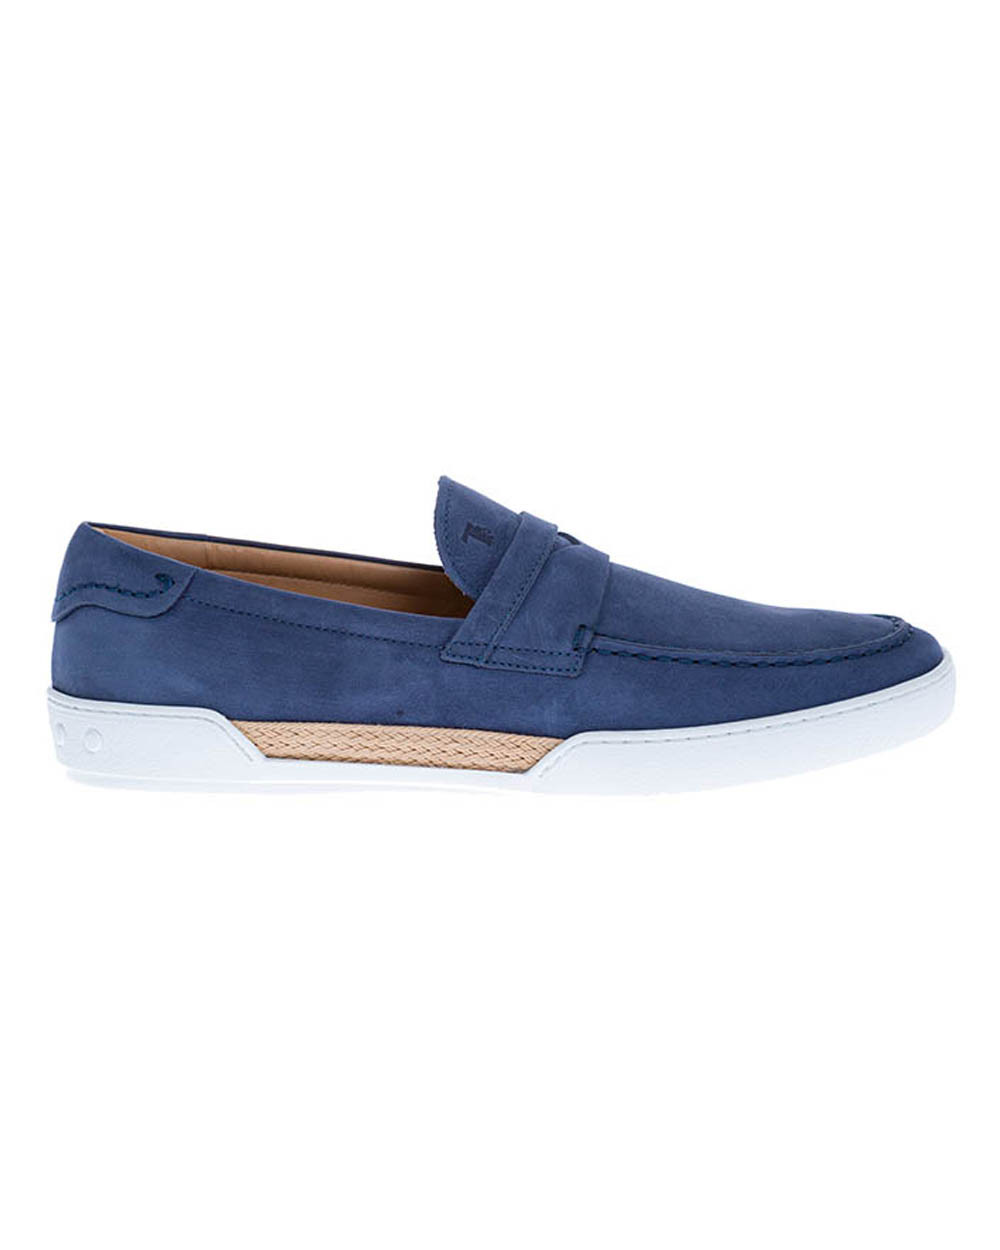 """""""Riviera"""" Nubuck moccasins with stitched band on top"""